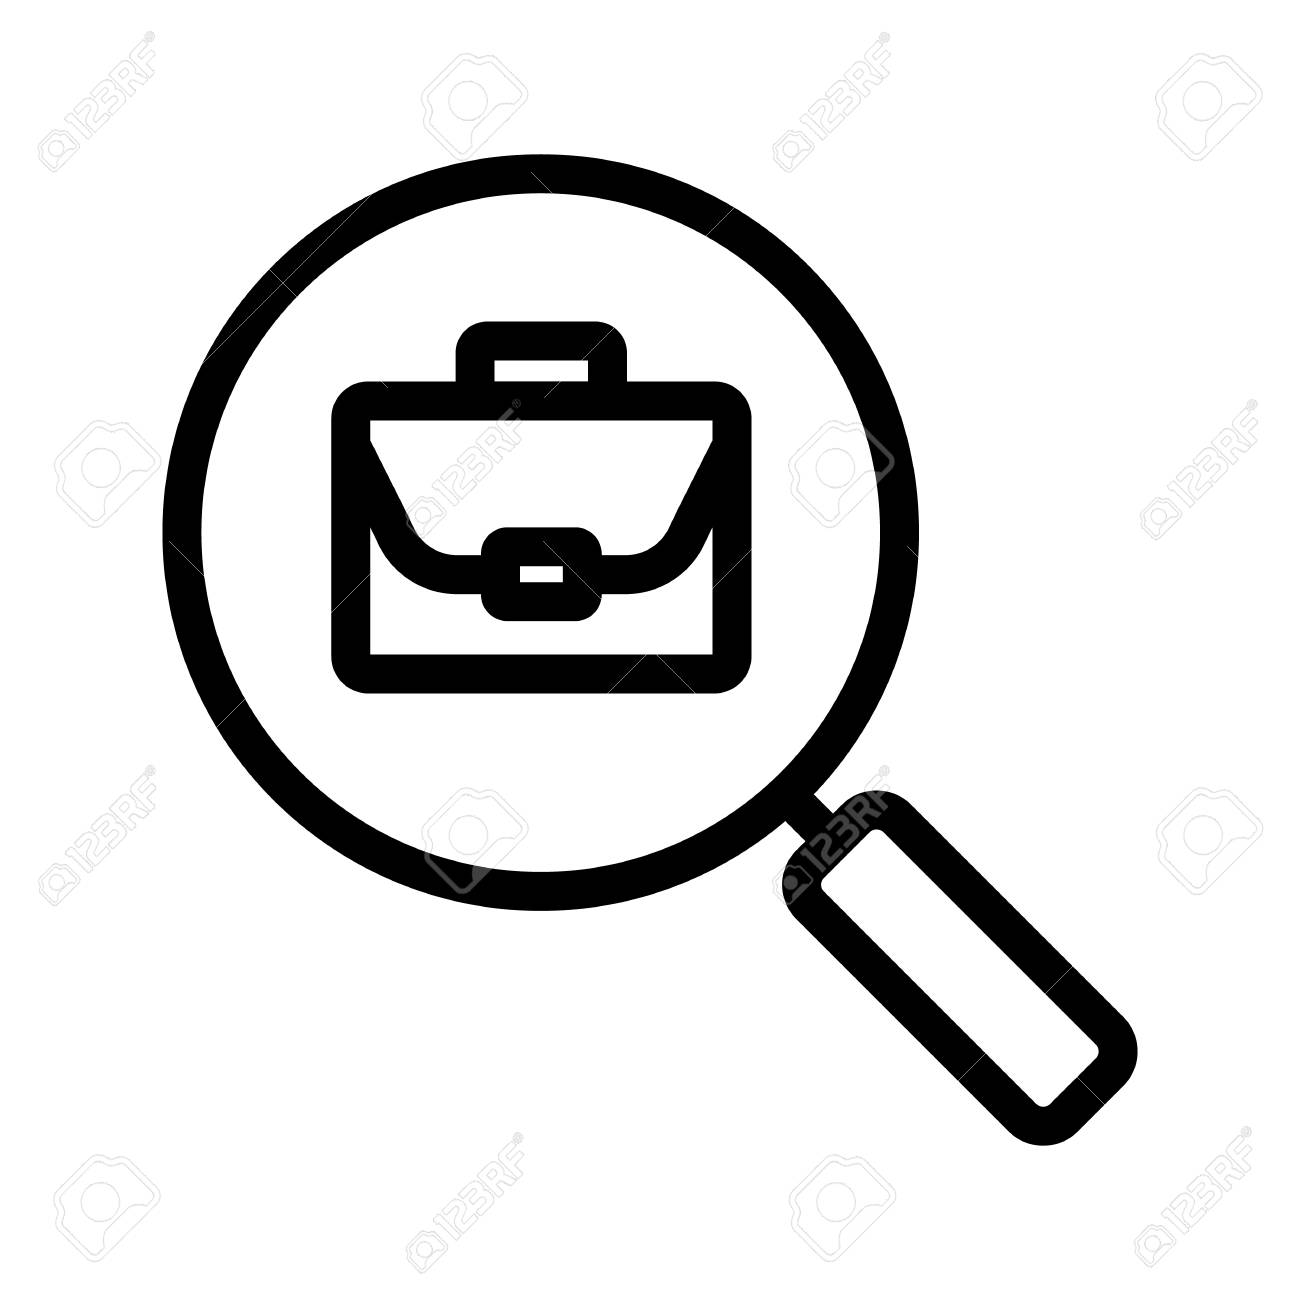 hight resolution of job search linear icon thin line illustration magnifying glass with briefcase contour symbol